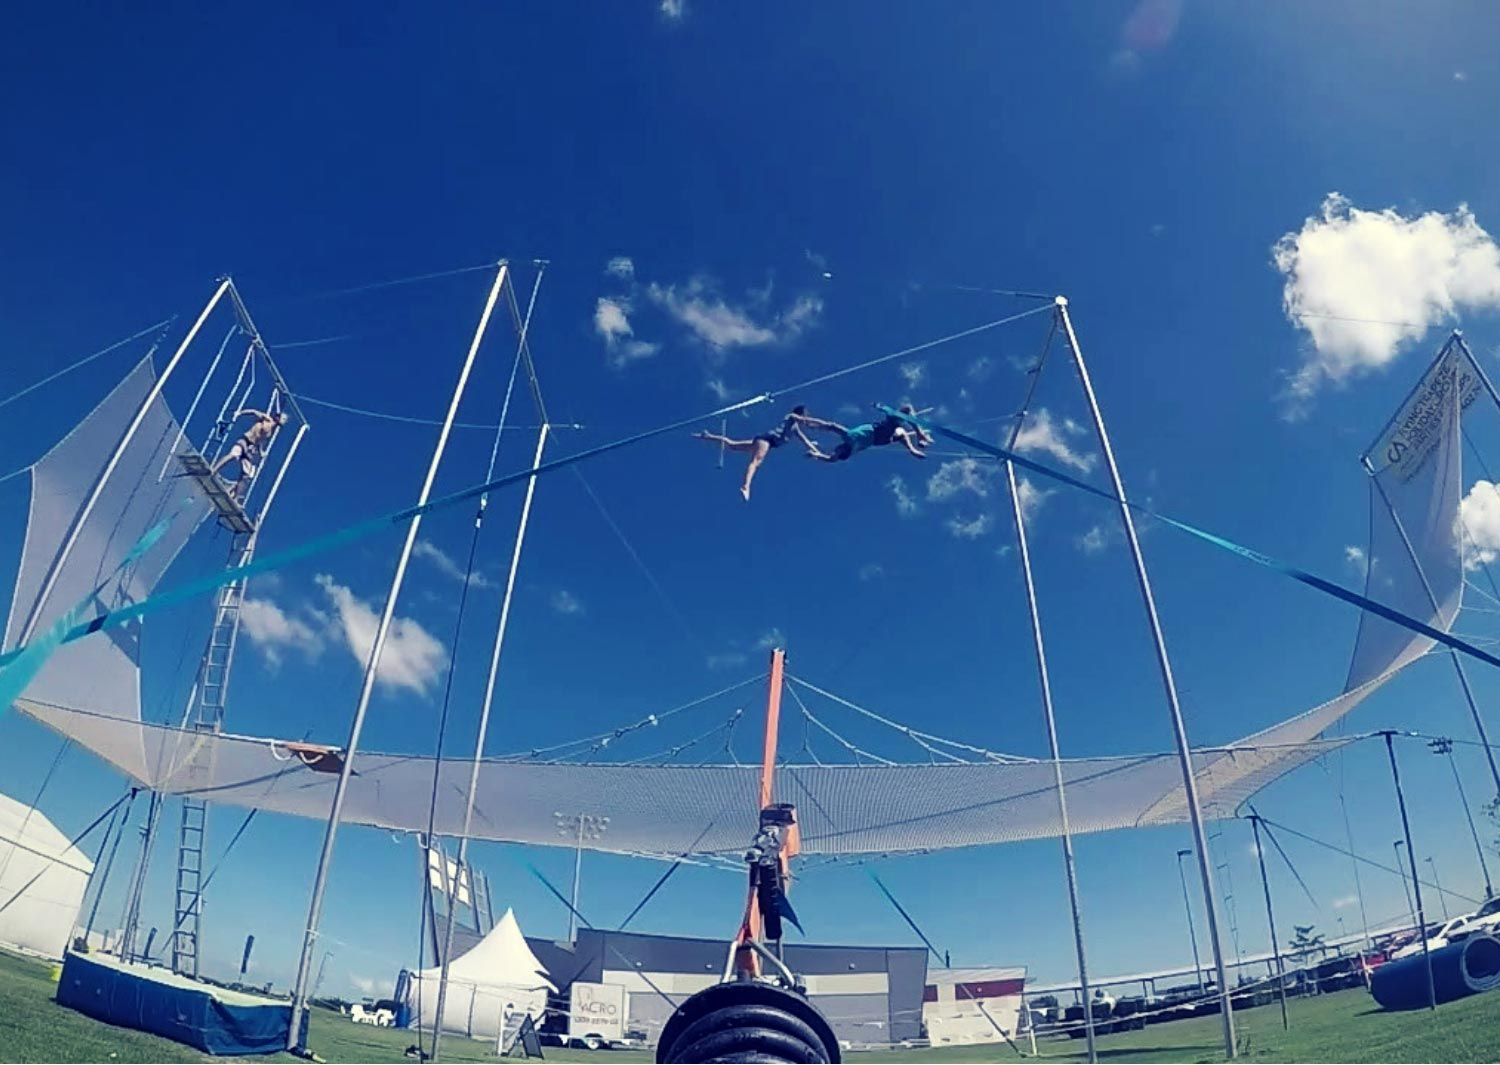 circus-arts-brisbane-flying-trapeze-rig-classes-1